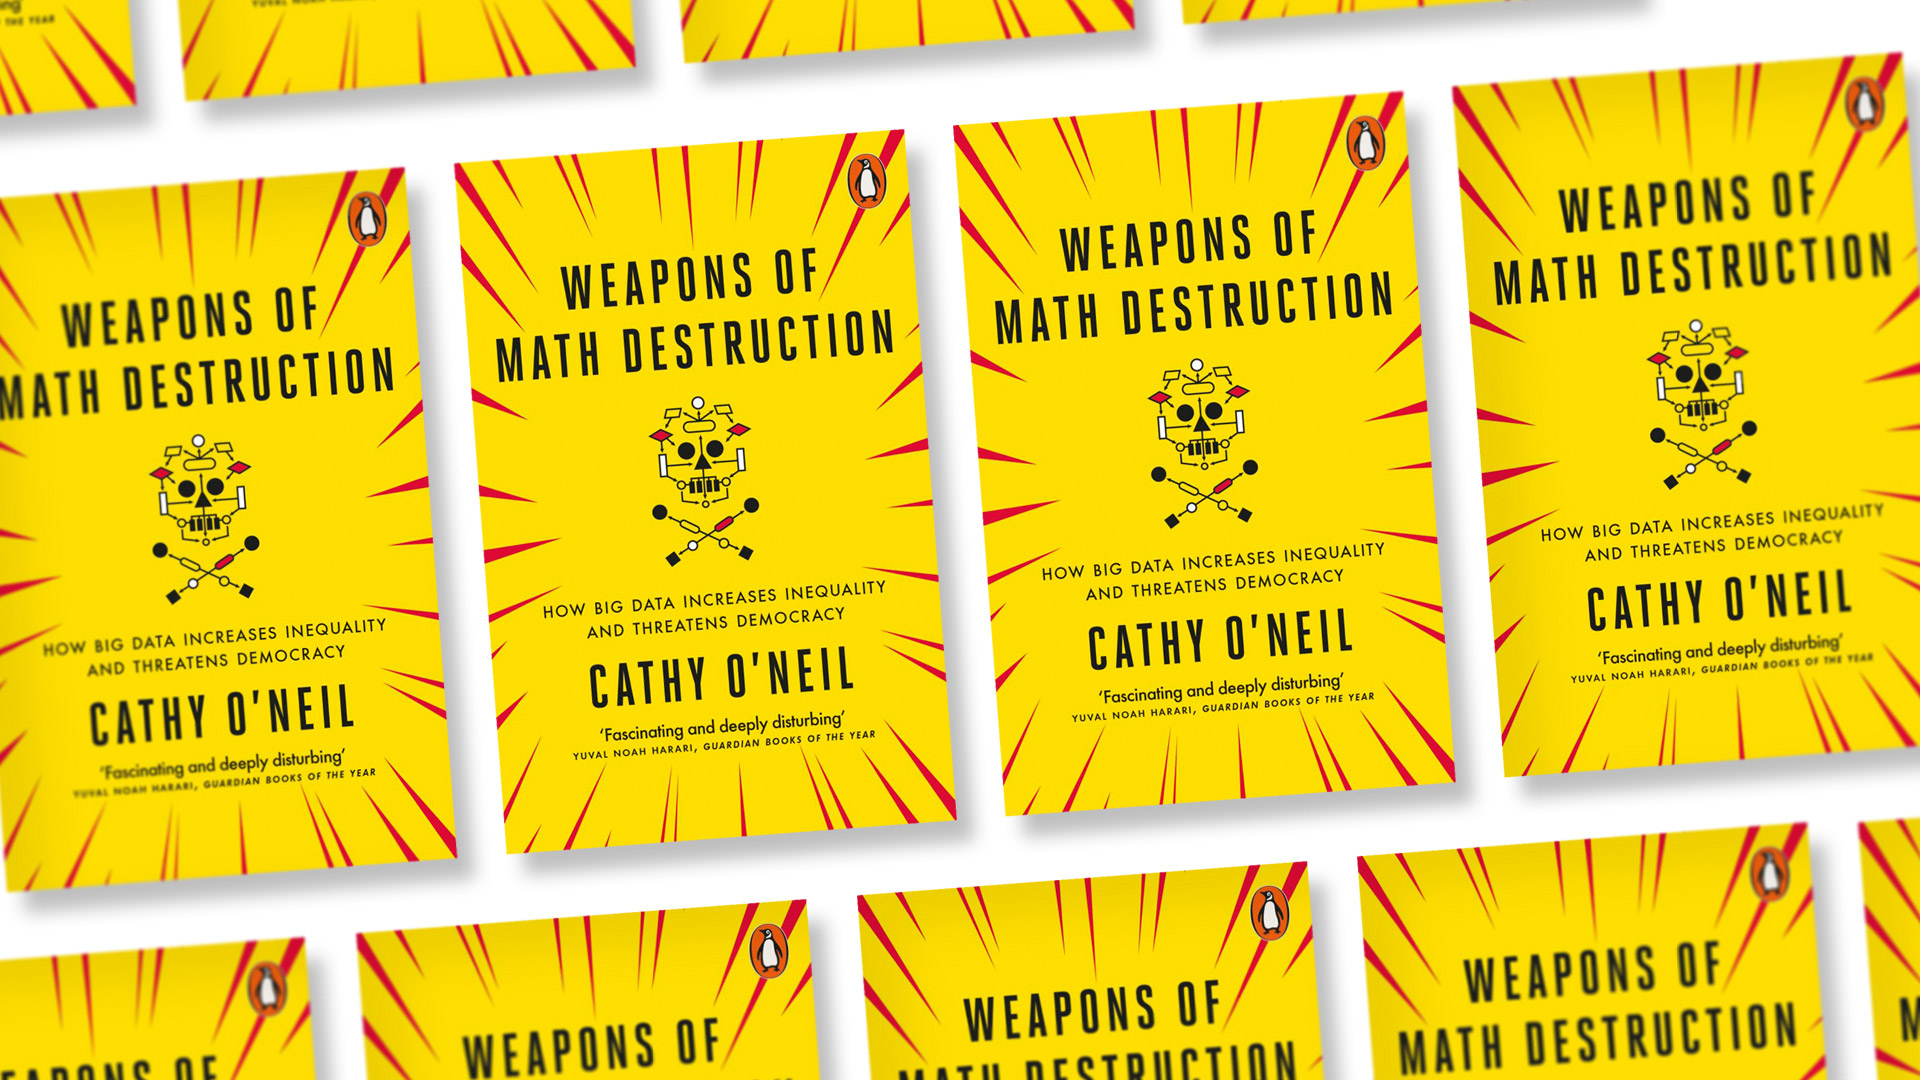 """In the 2020-21 First Year Book, """"Weapons of Math Destruction: How Big Data Increases Inequality and Threatens Democracy,"""" author Cathy O'Neil (below) argues that the mathematical models so ubiquitous in our daily lives reinforce discrimination and urges us to take a long, hard look at the impact of algorithms that influence the world fundamentally."""